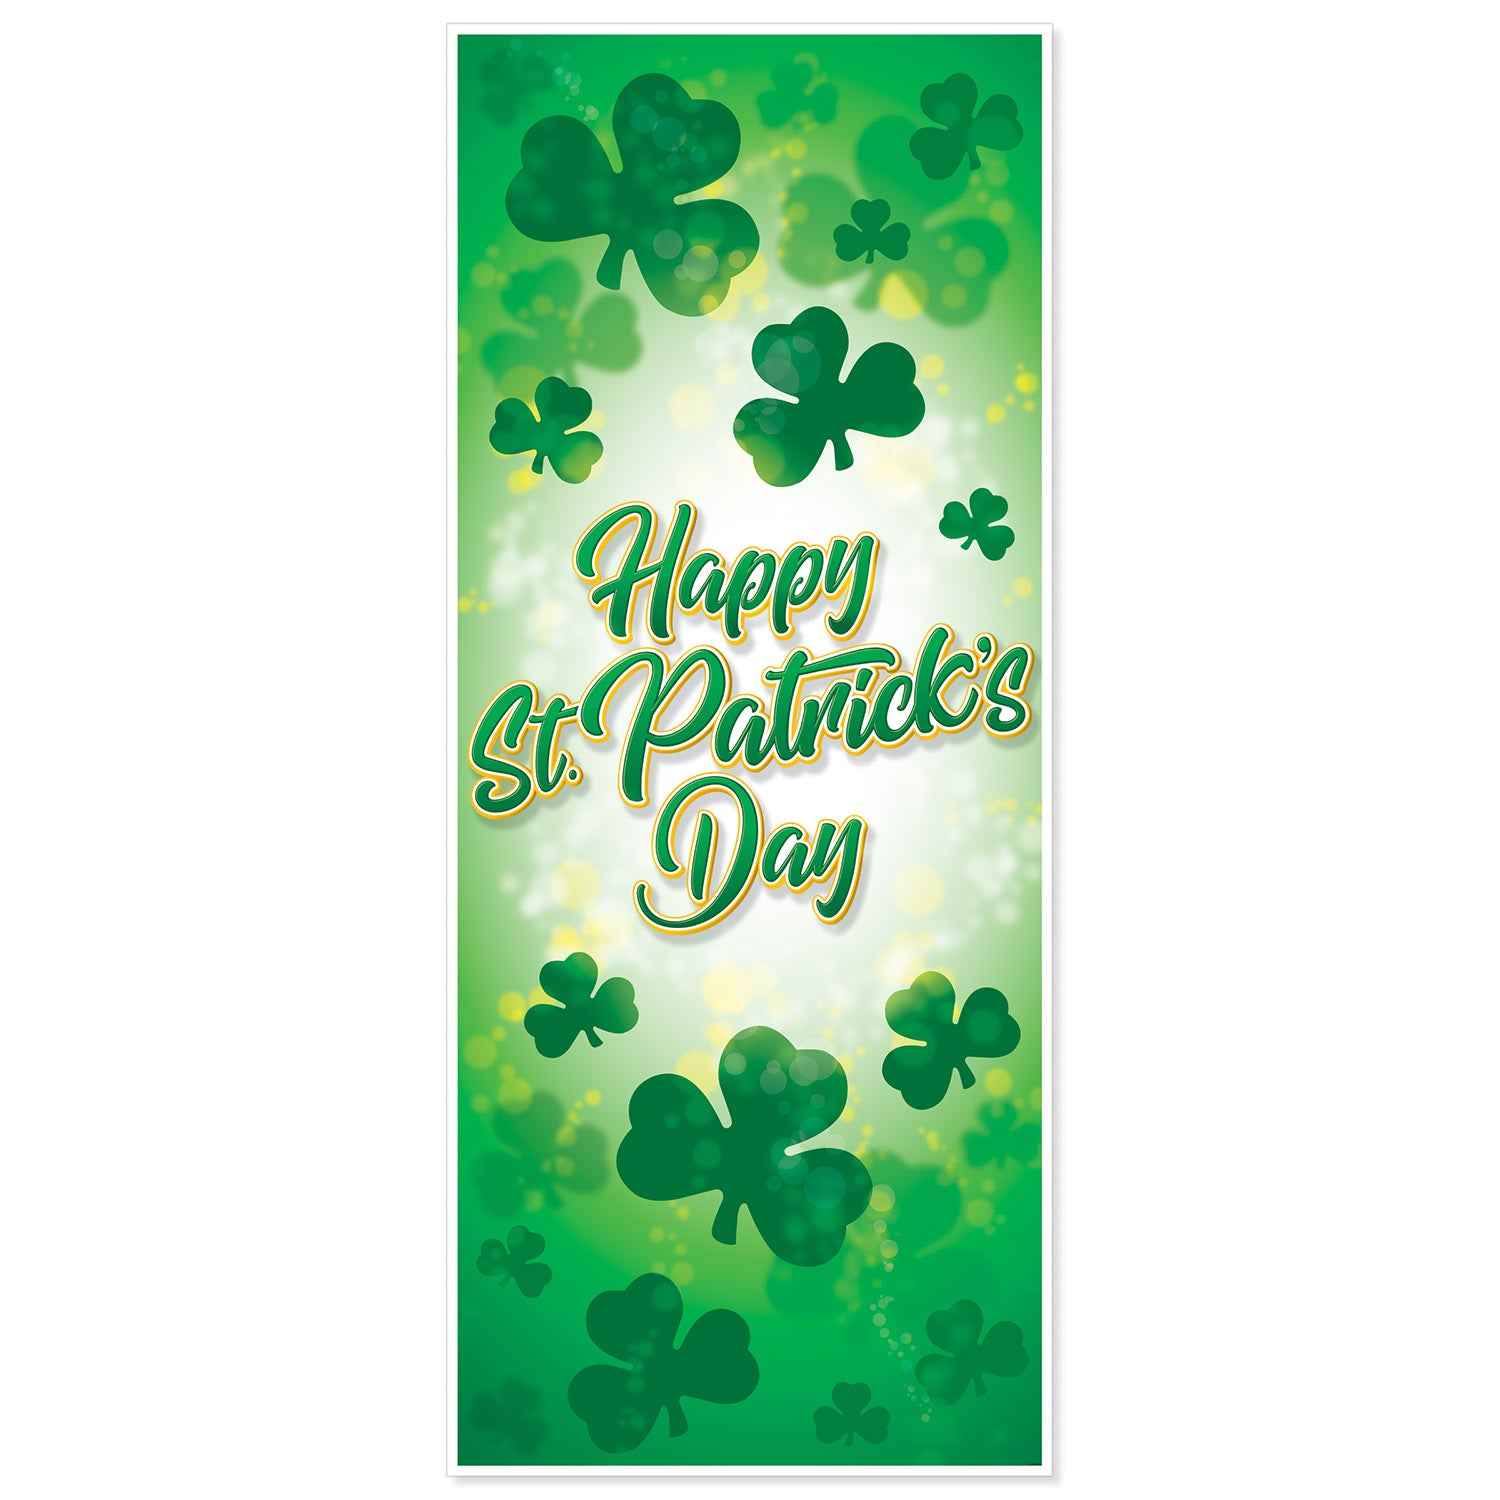 Happy St. Patrick's Day Door Cover by Beistle - St. Patricks Day Theme Decorations